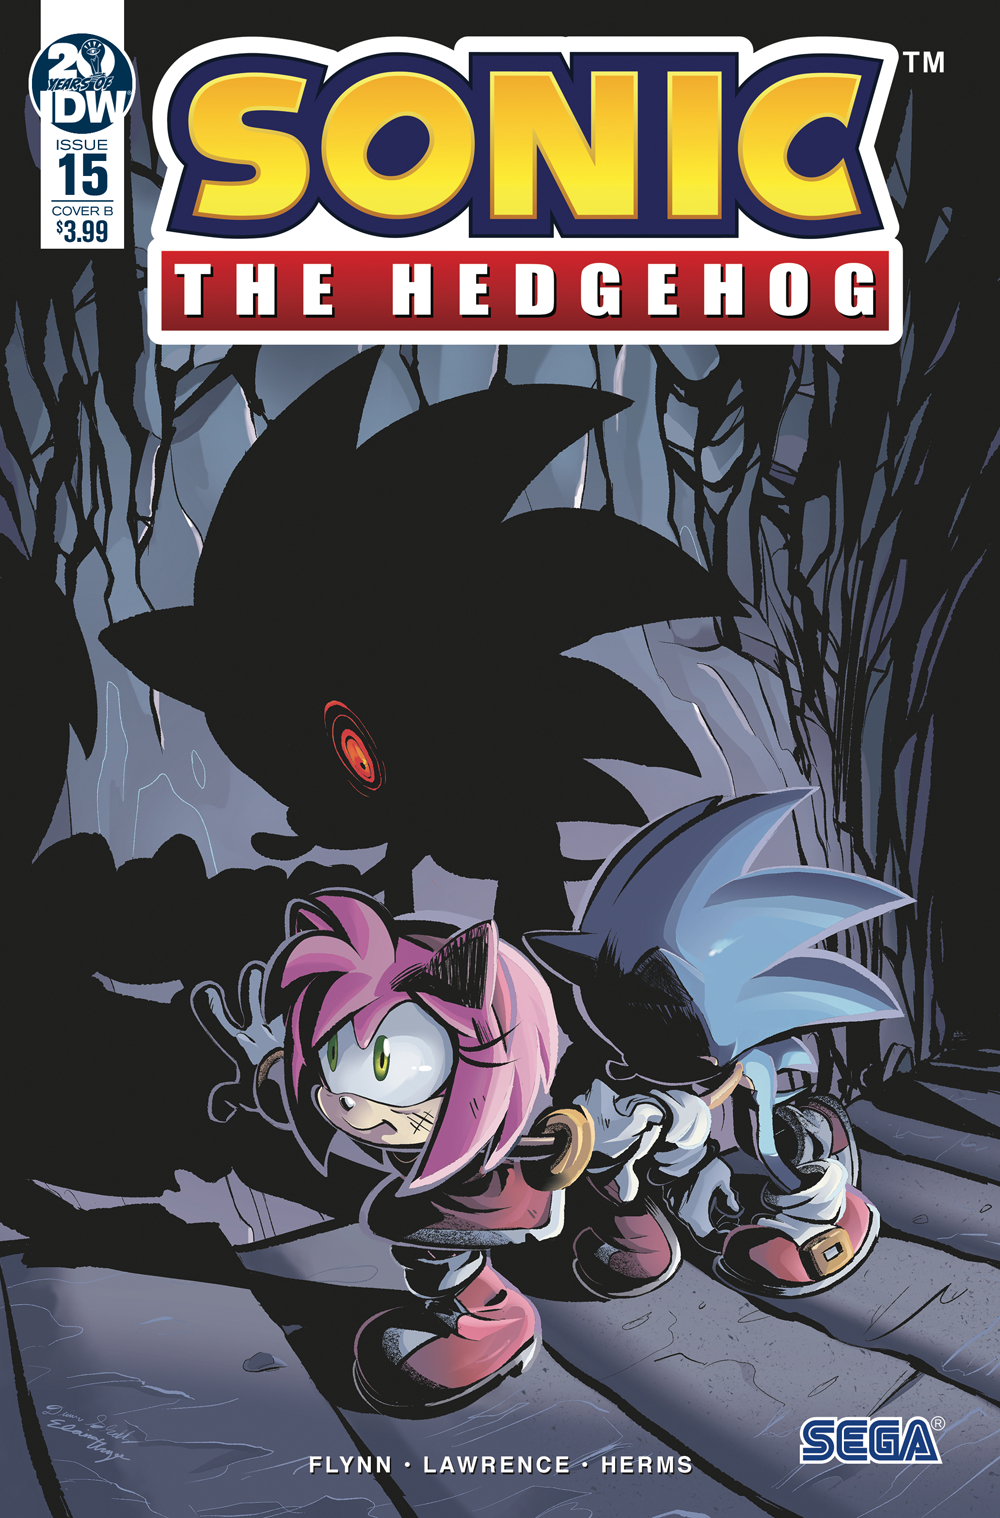 SONIC THE HEDGEHOG #15 CVR B SKELLY